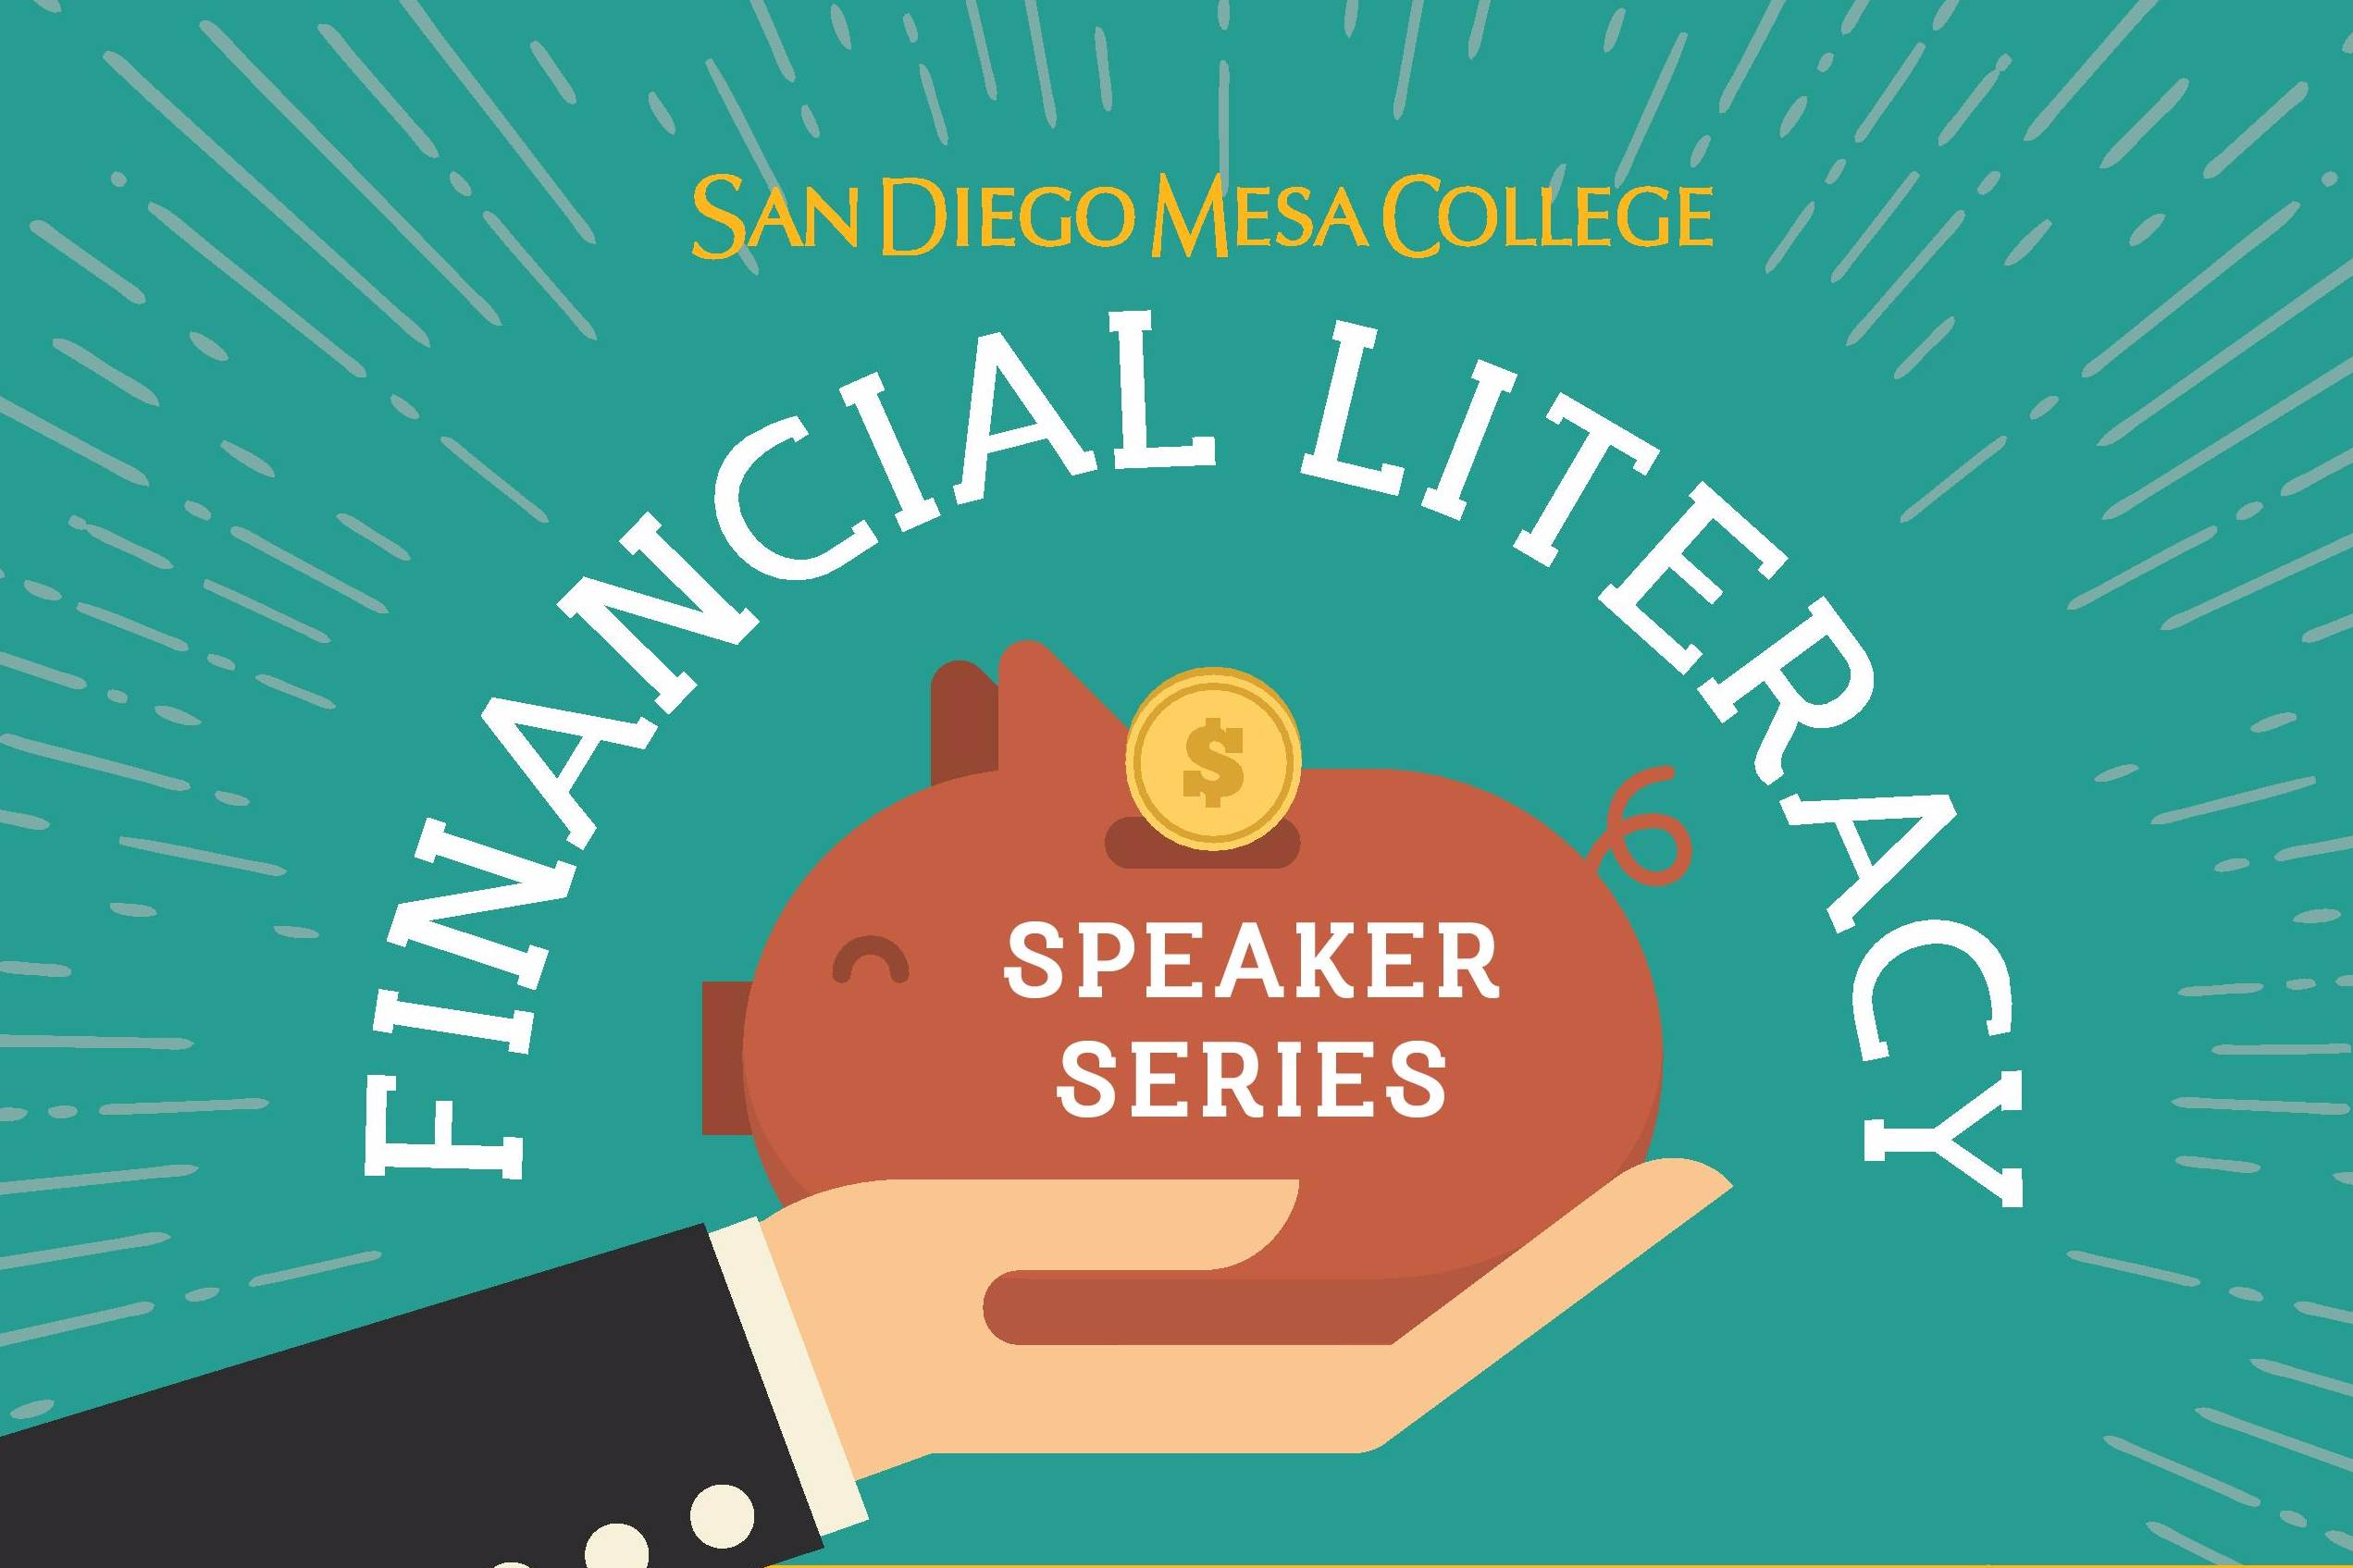 San Diego Mesa College's Financial Literacy Taskforce is starting a new Financial Literacy Speaker Series for students on campus, starting with a lecture on $mart $pending by Rae Russell on Thursday, Feb. 21 at 11:30 a.m.